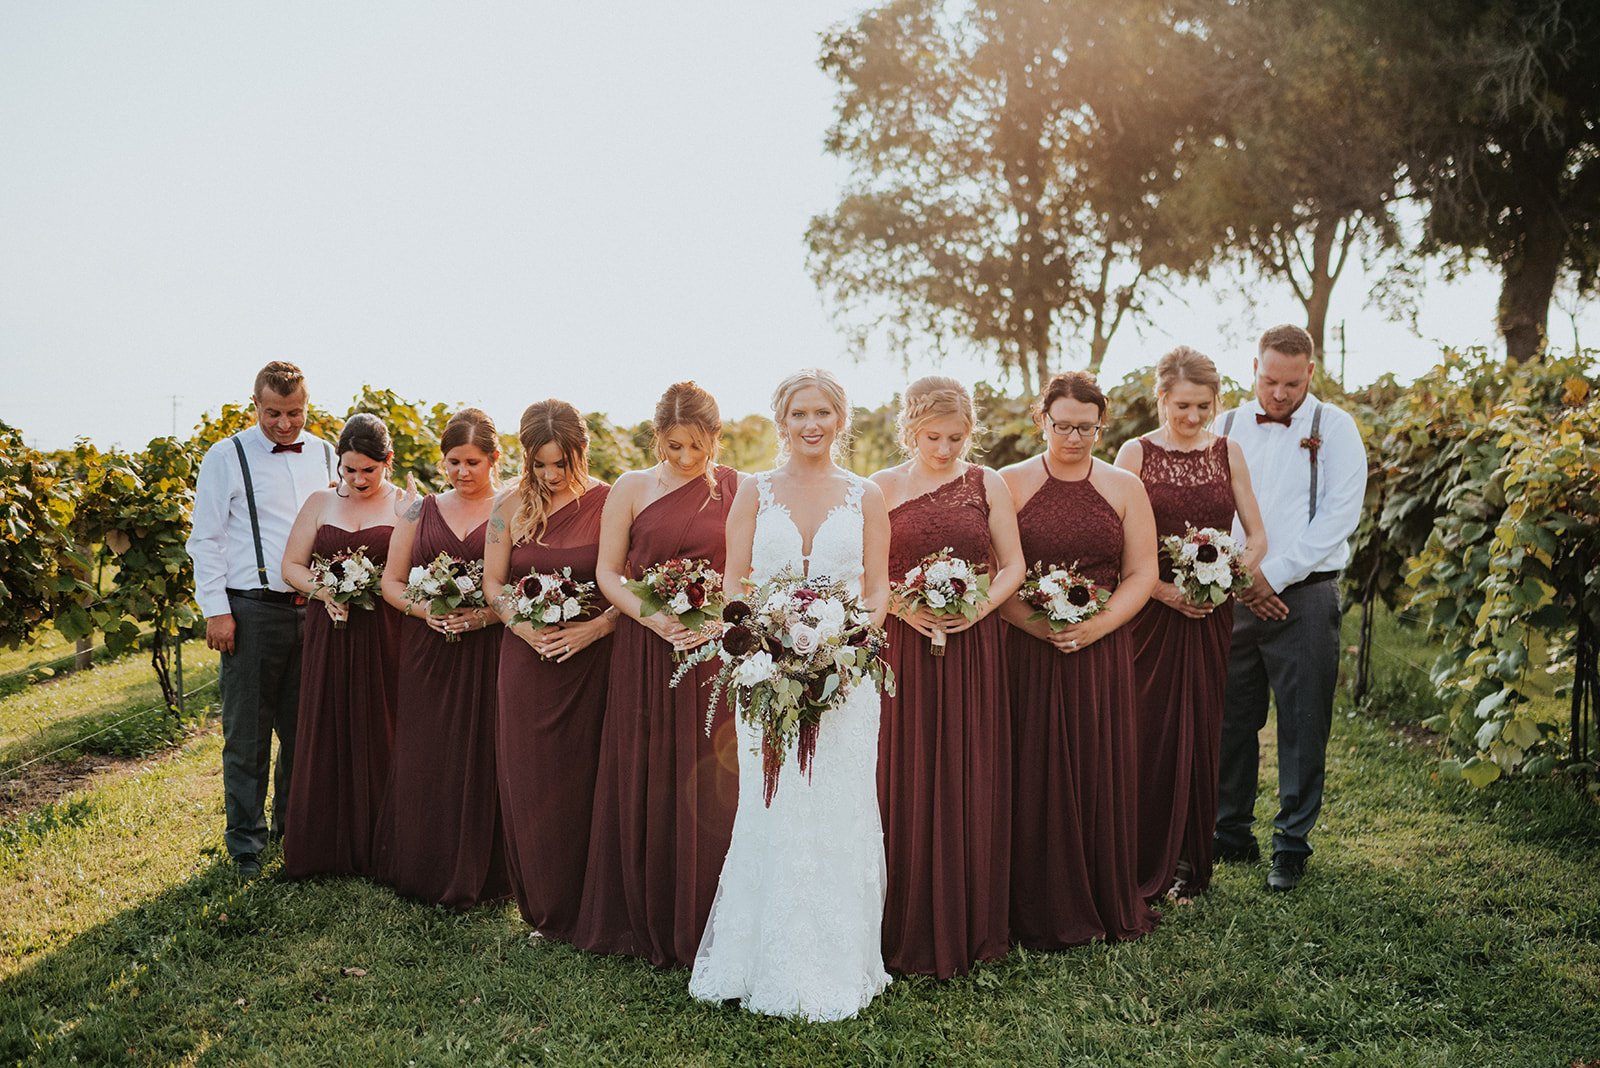 overthevineswisconsinwedding_0856.jpg